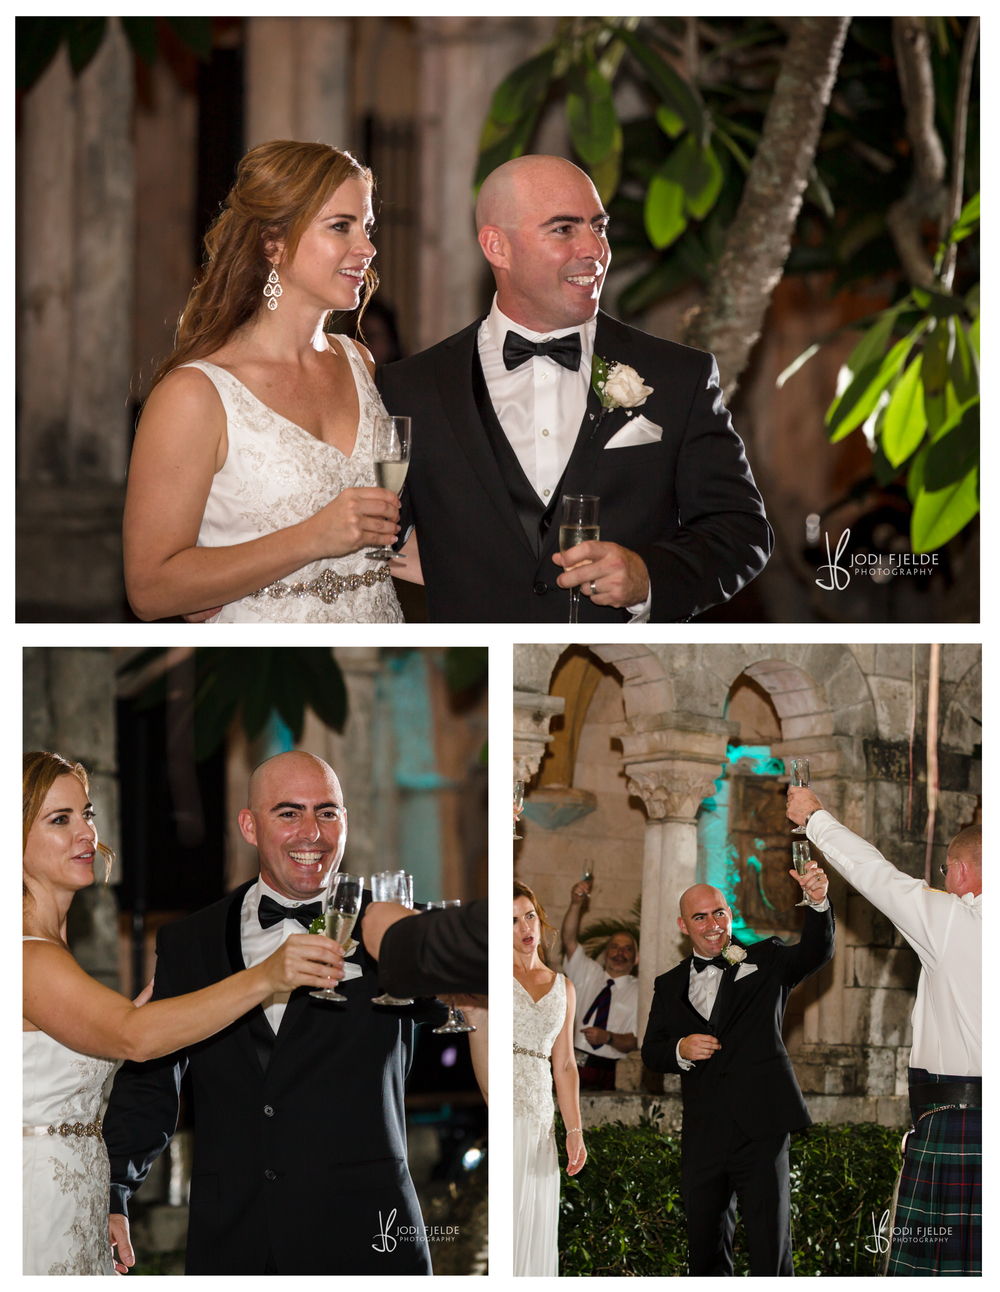 Ancient_Spanish_Monastery_Miami_Florida_wedding_Gio_Iggy_Jodi_Fjelde_Photography_19.jpg